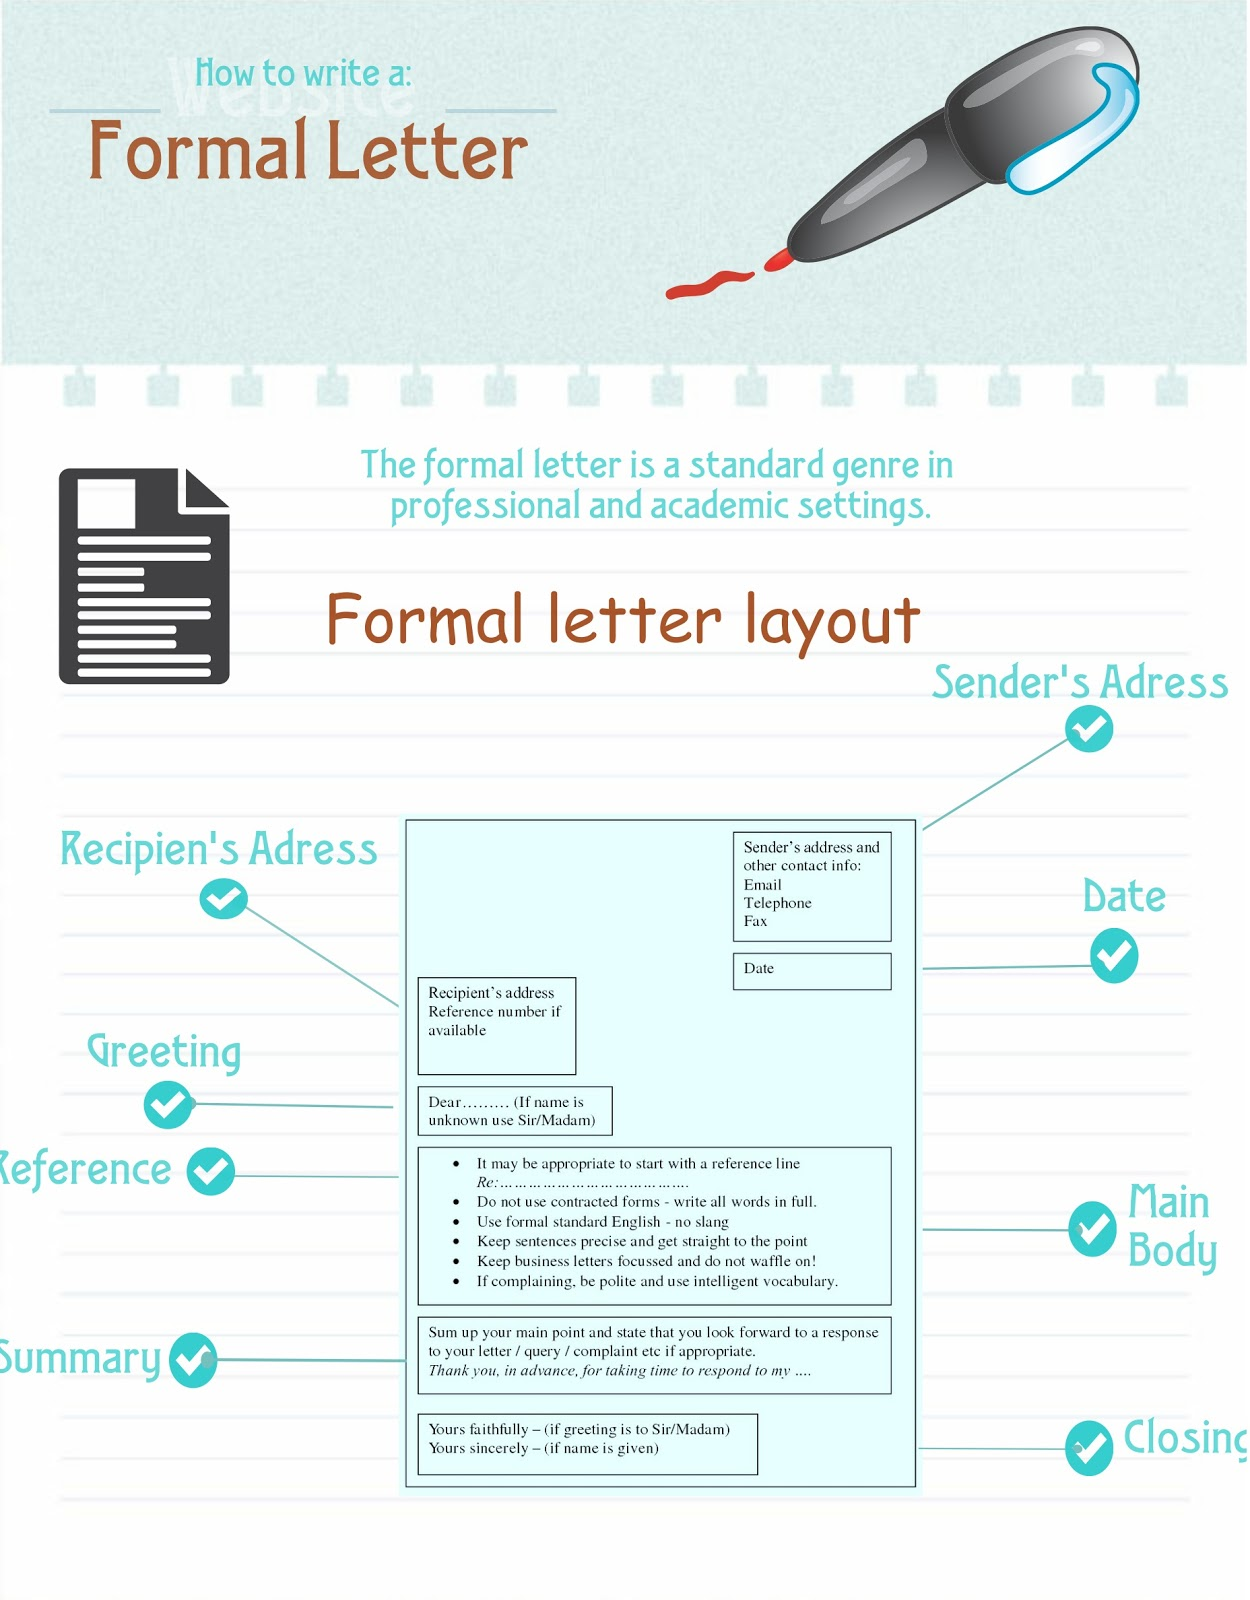 Formal writing production altavistaventures Choice Image